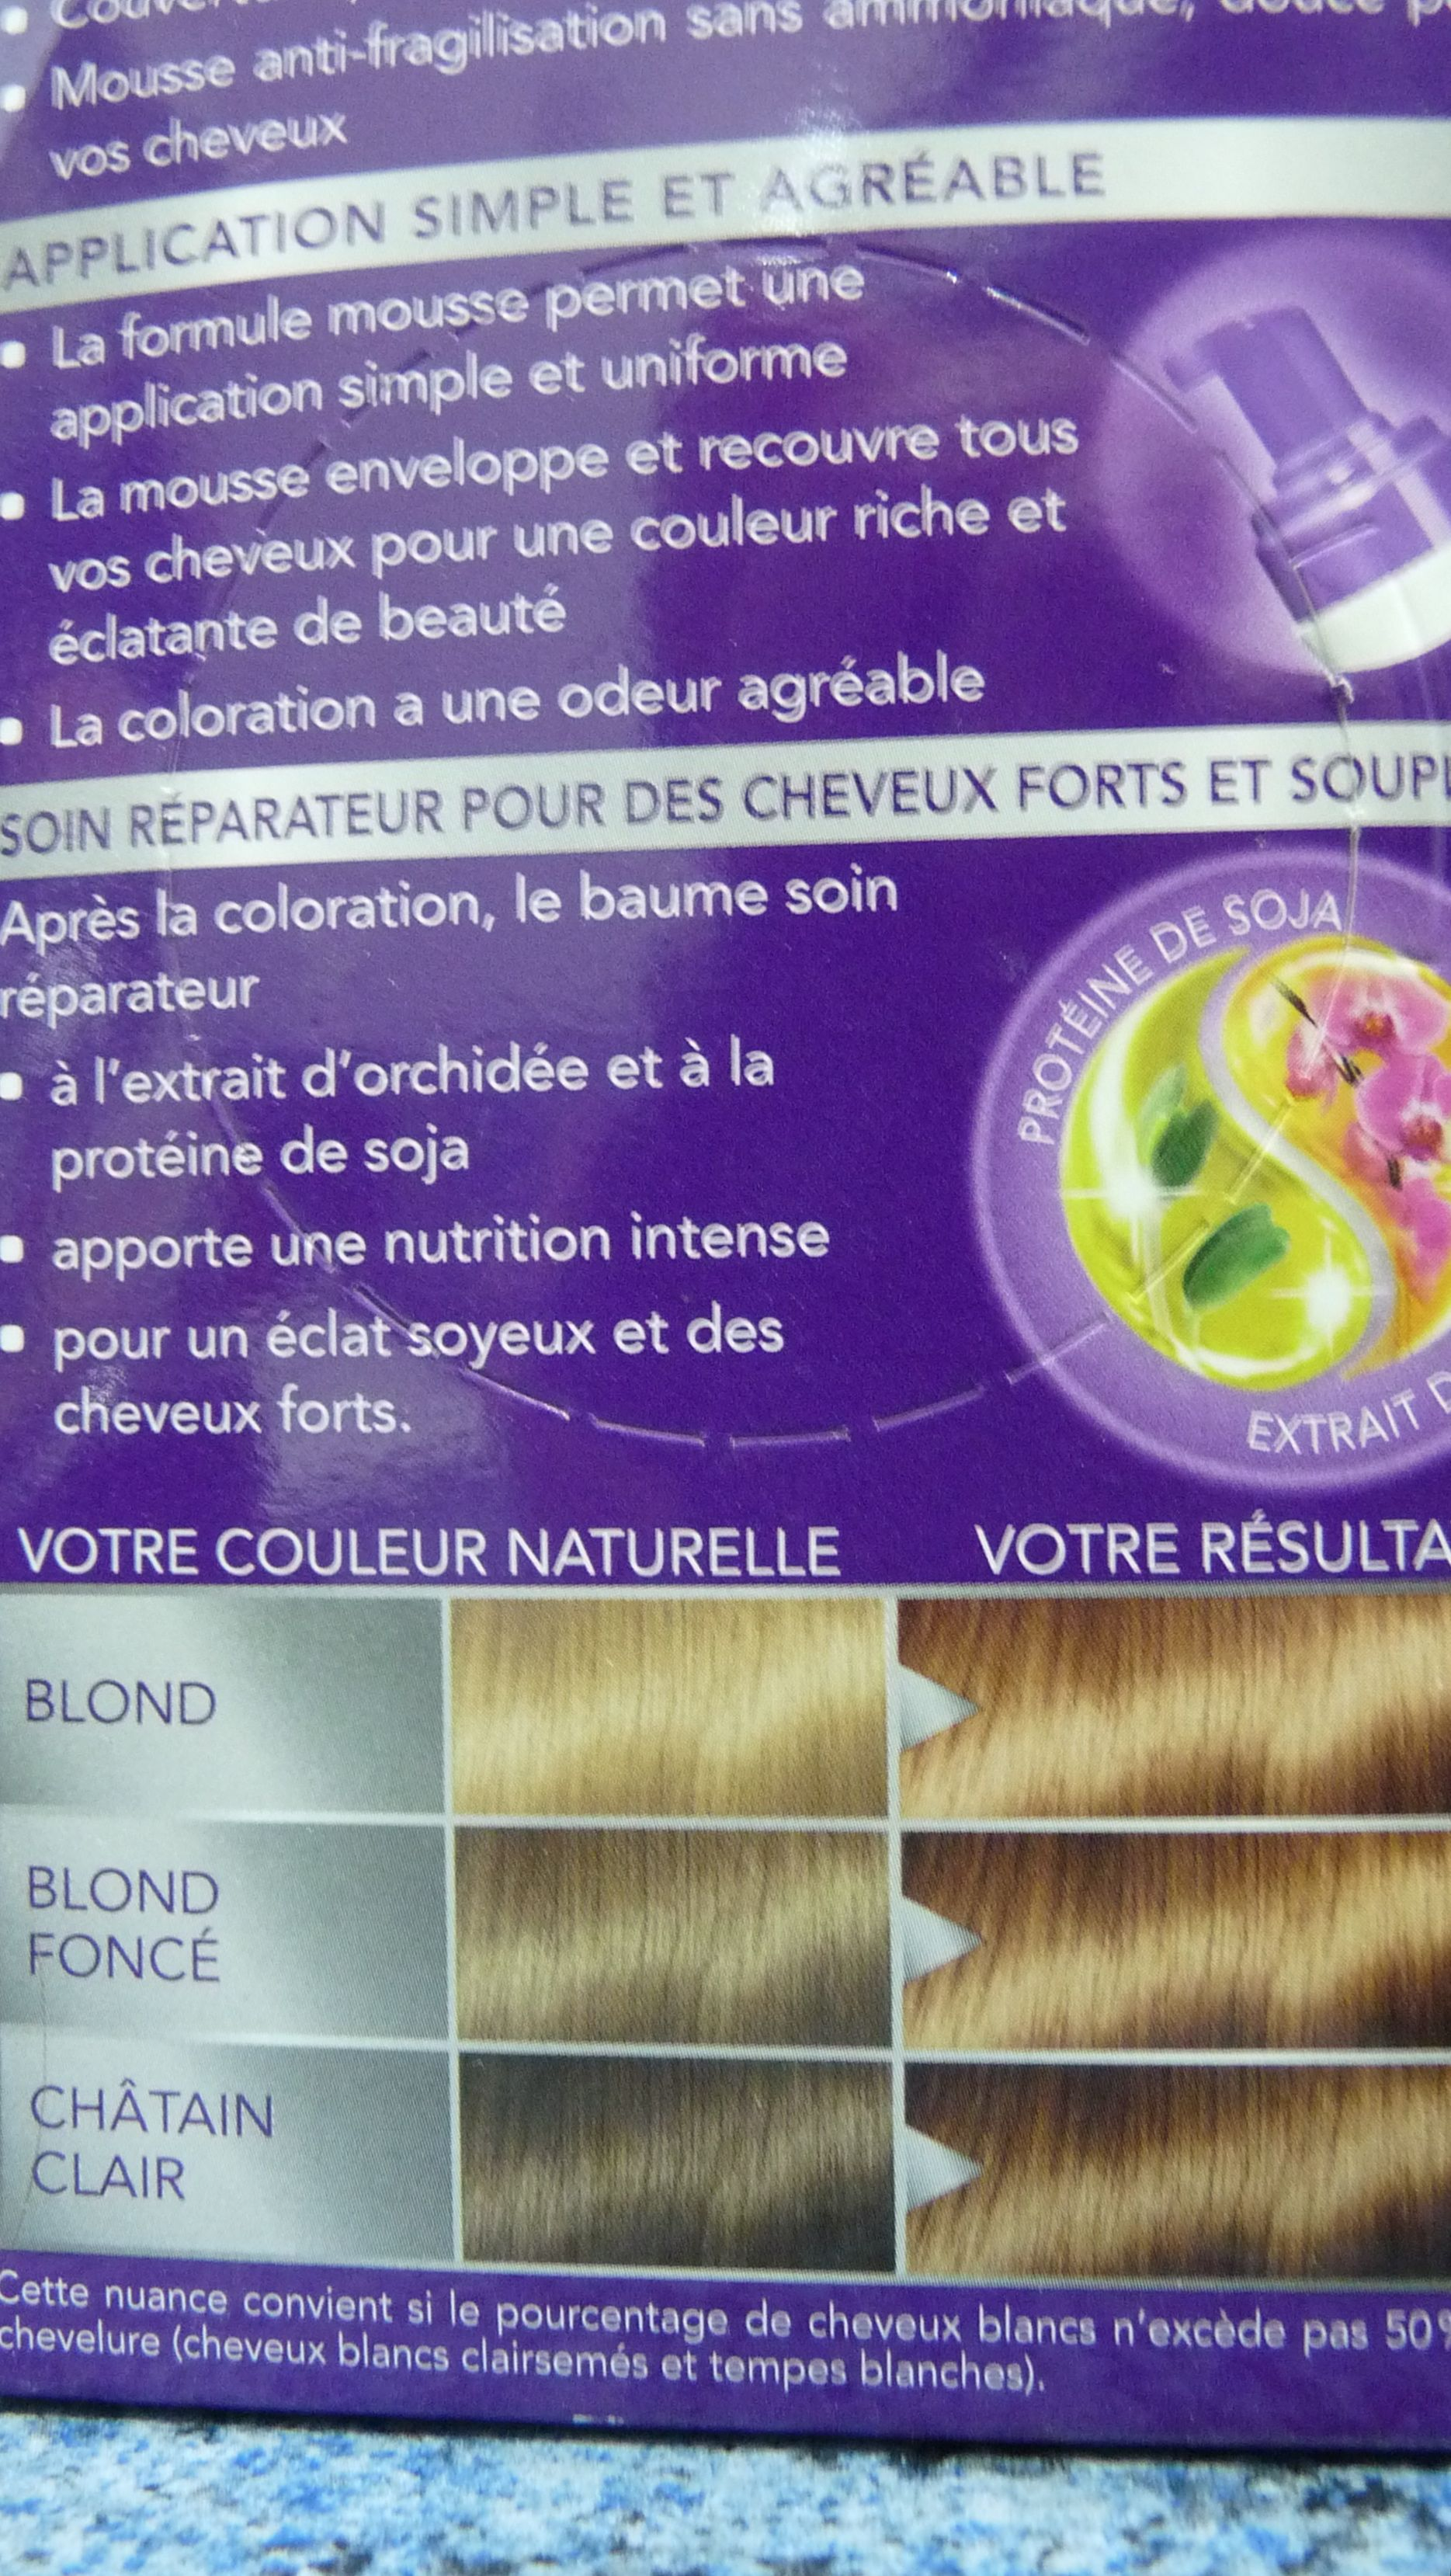 schwarzkopf coloration Perfect mousse